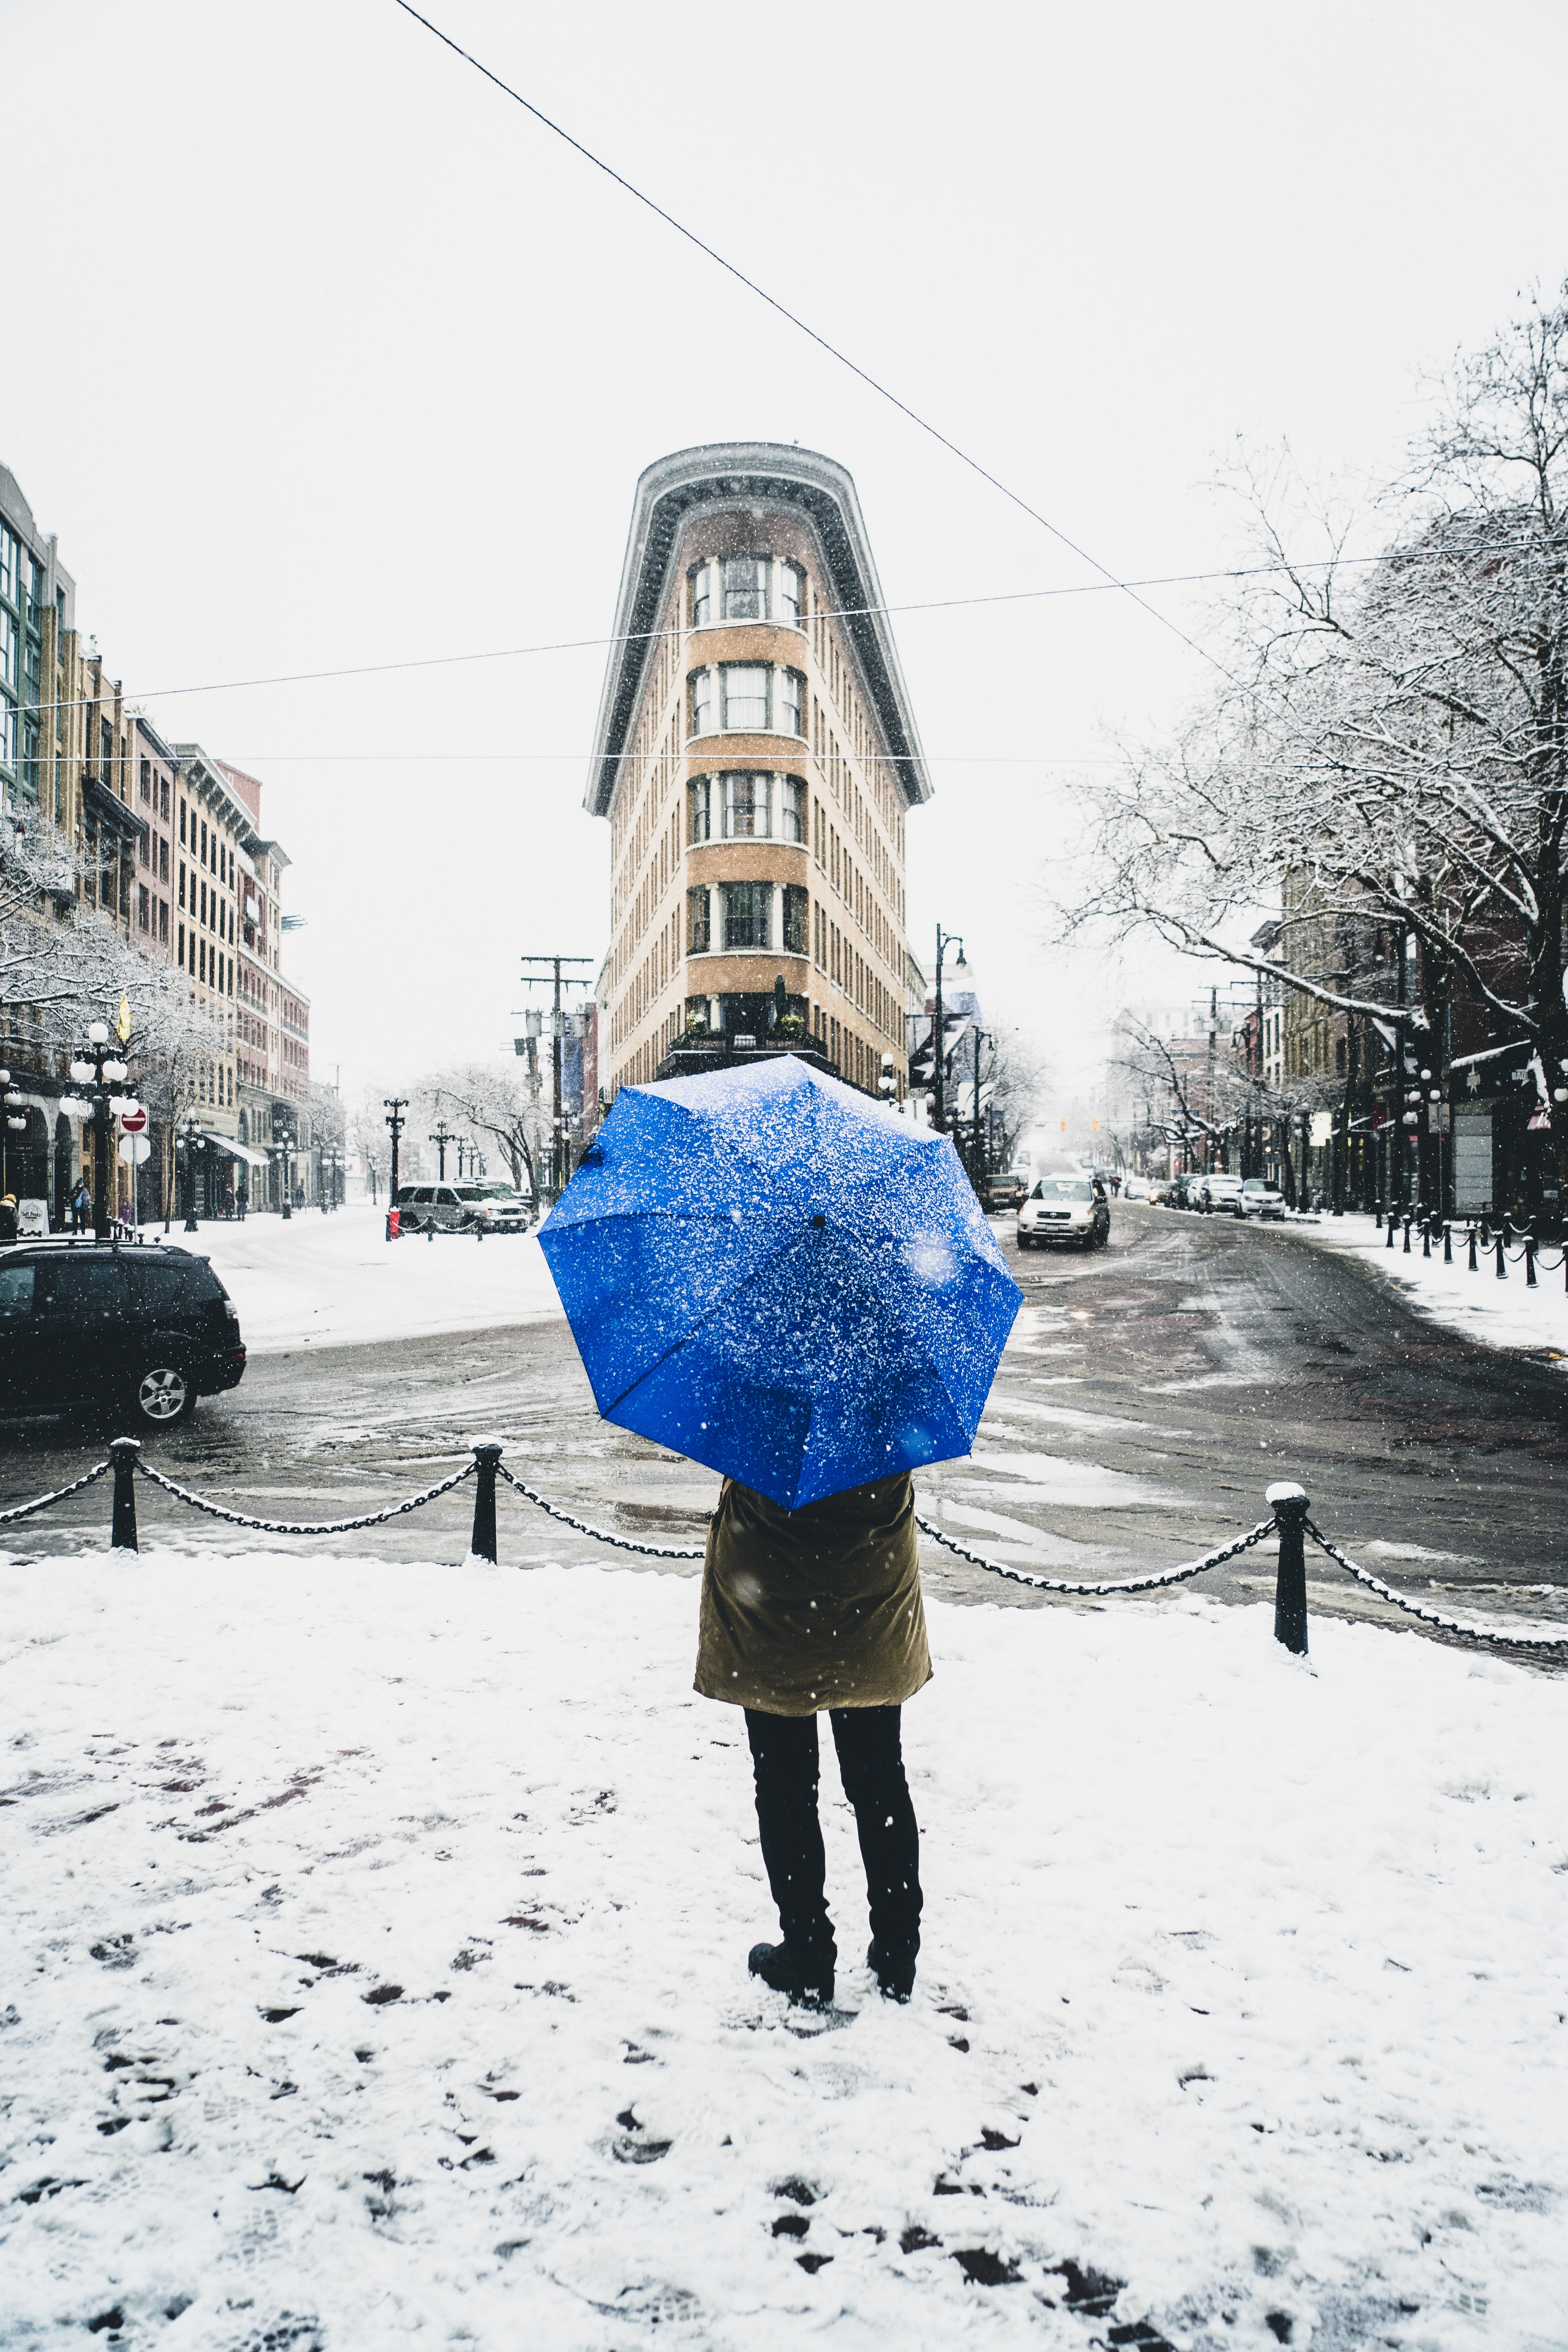 20 Clever Winter And Snow Puns For Your Instagram Captions